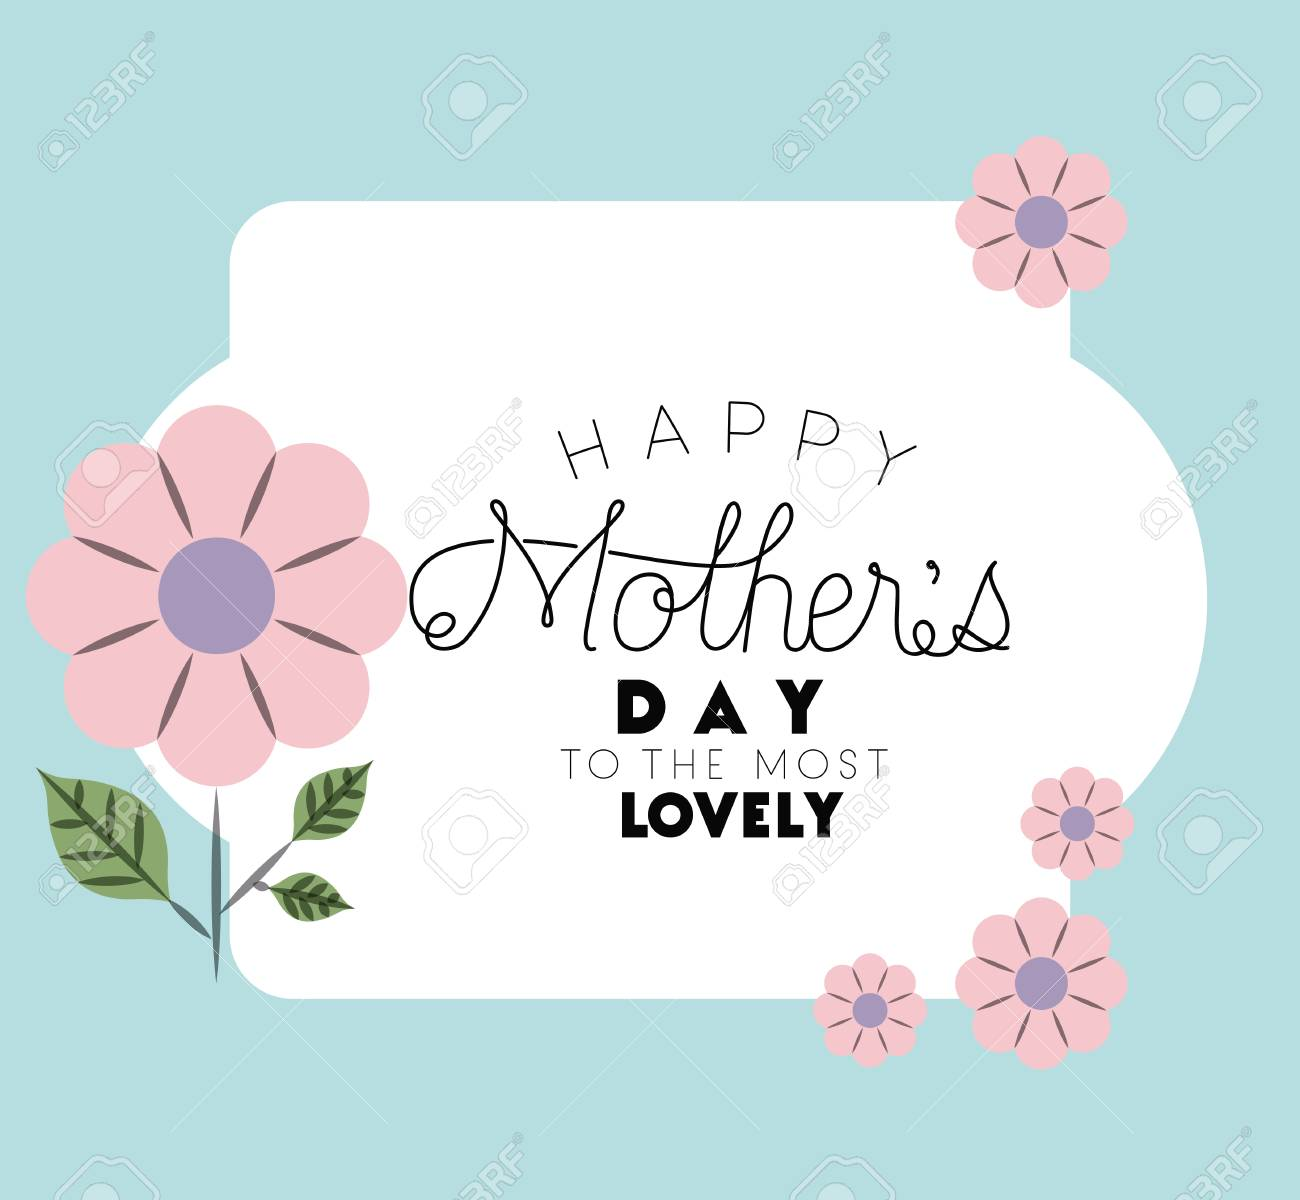 Happy Mothers Day Frame With Flowers Vector Illustration Design ...